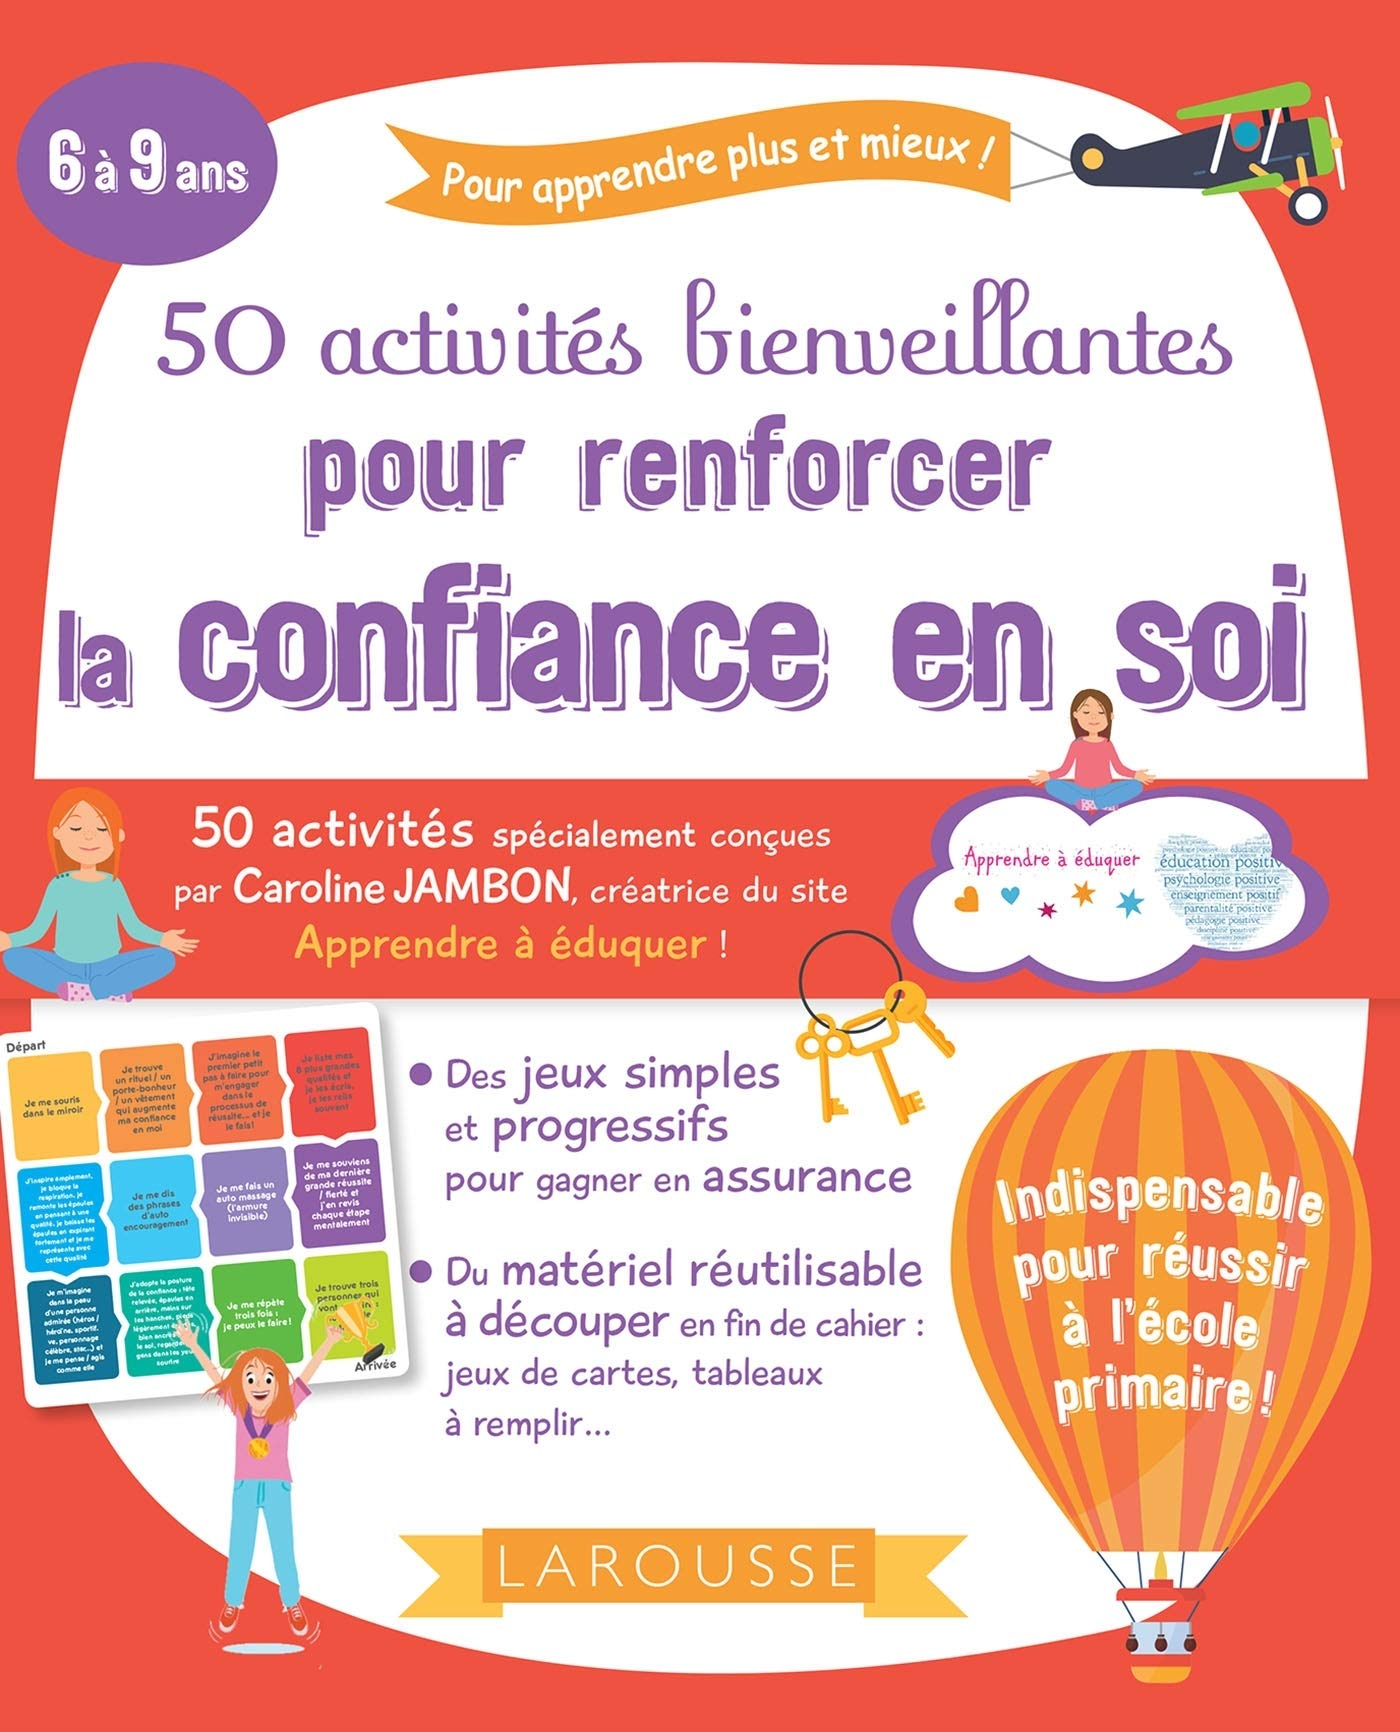 50 activités bienveillantes pour renforcer la confiance en soi